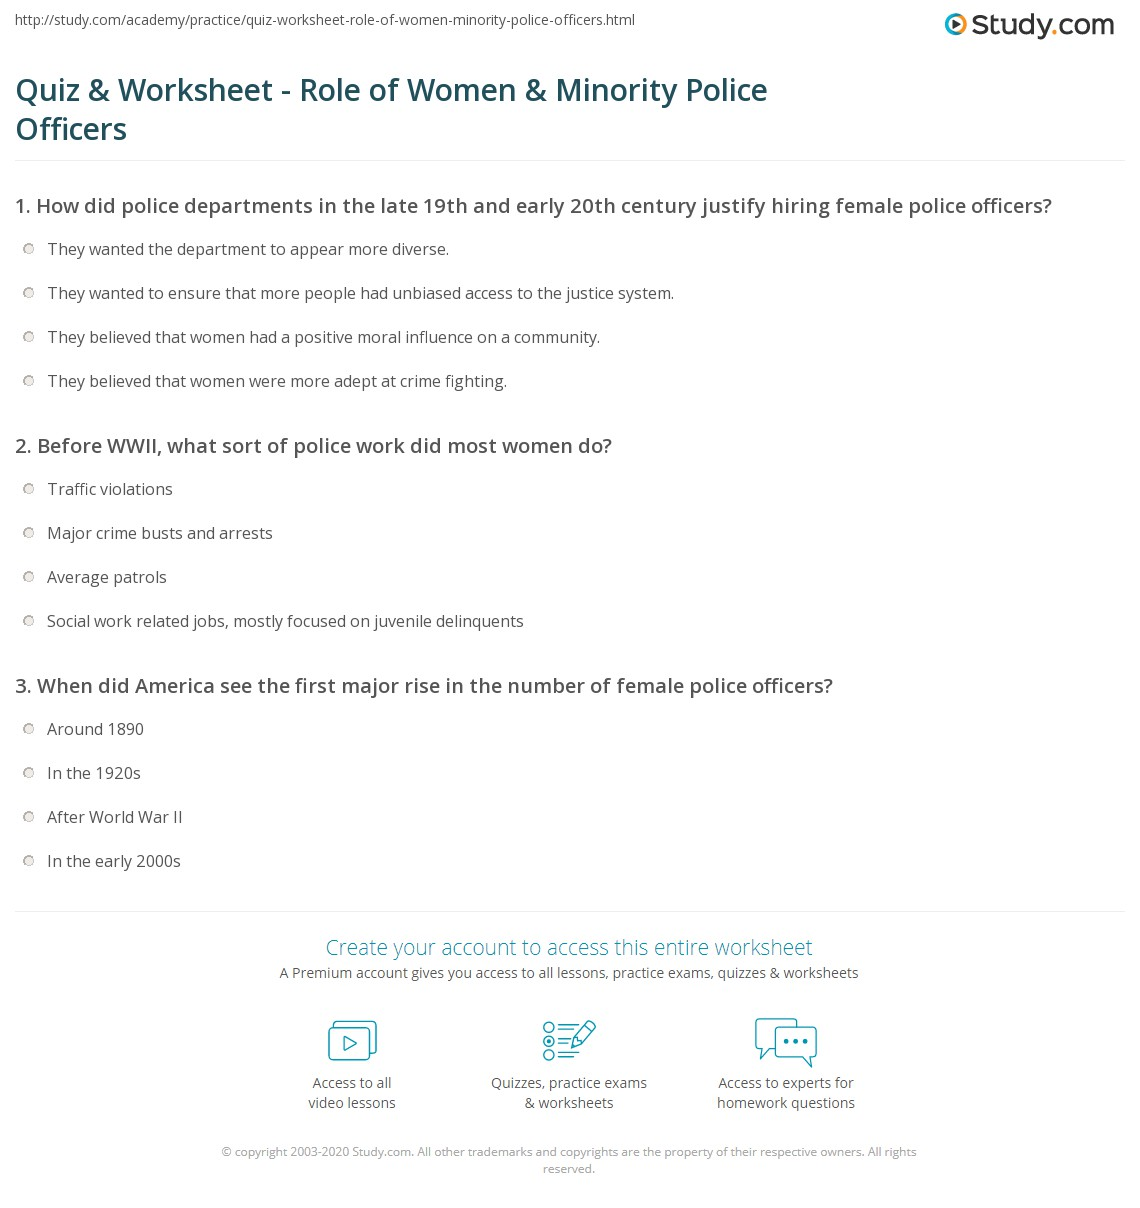 quiz worksheet role of women minority police officers print the history of women minorities in the police profession worksheet